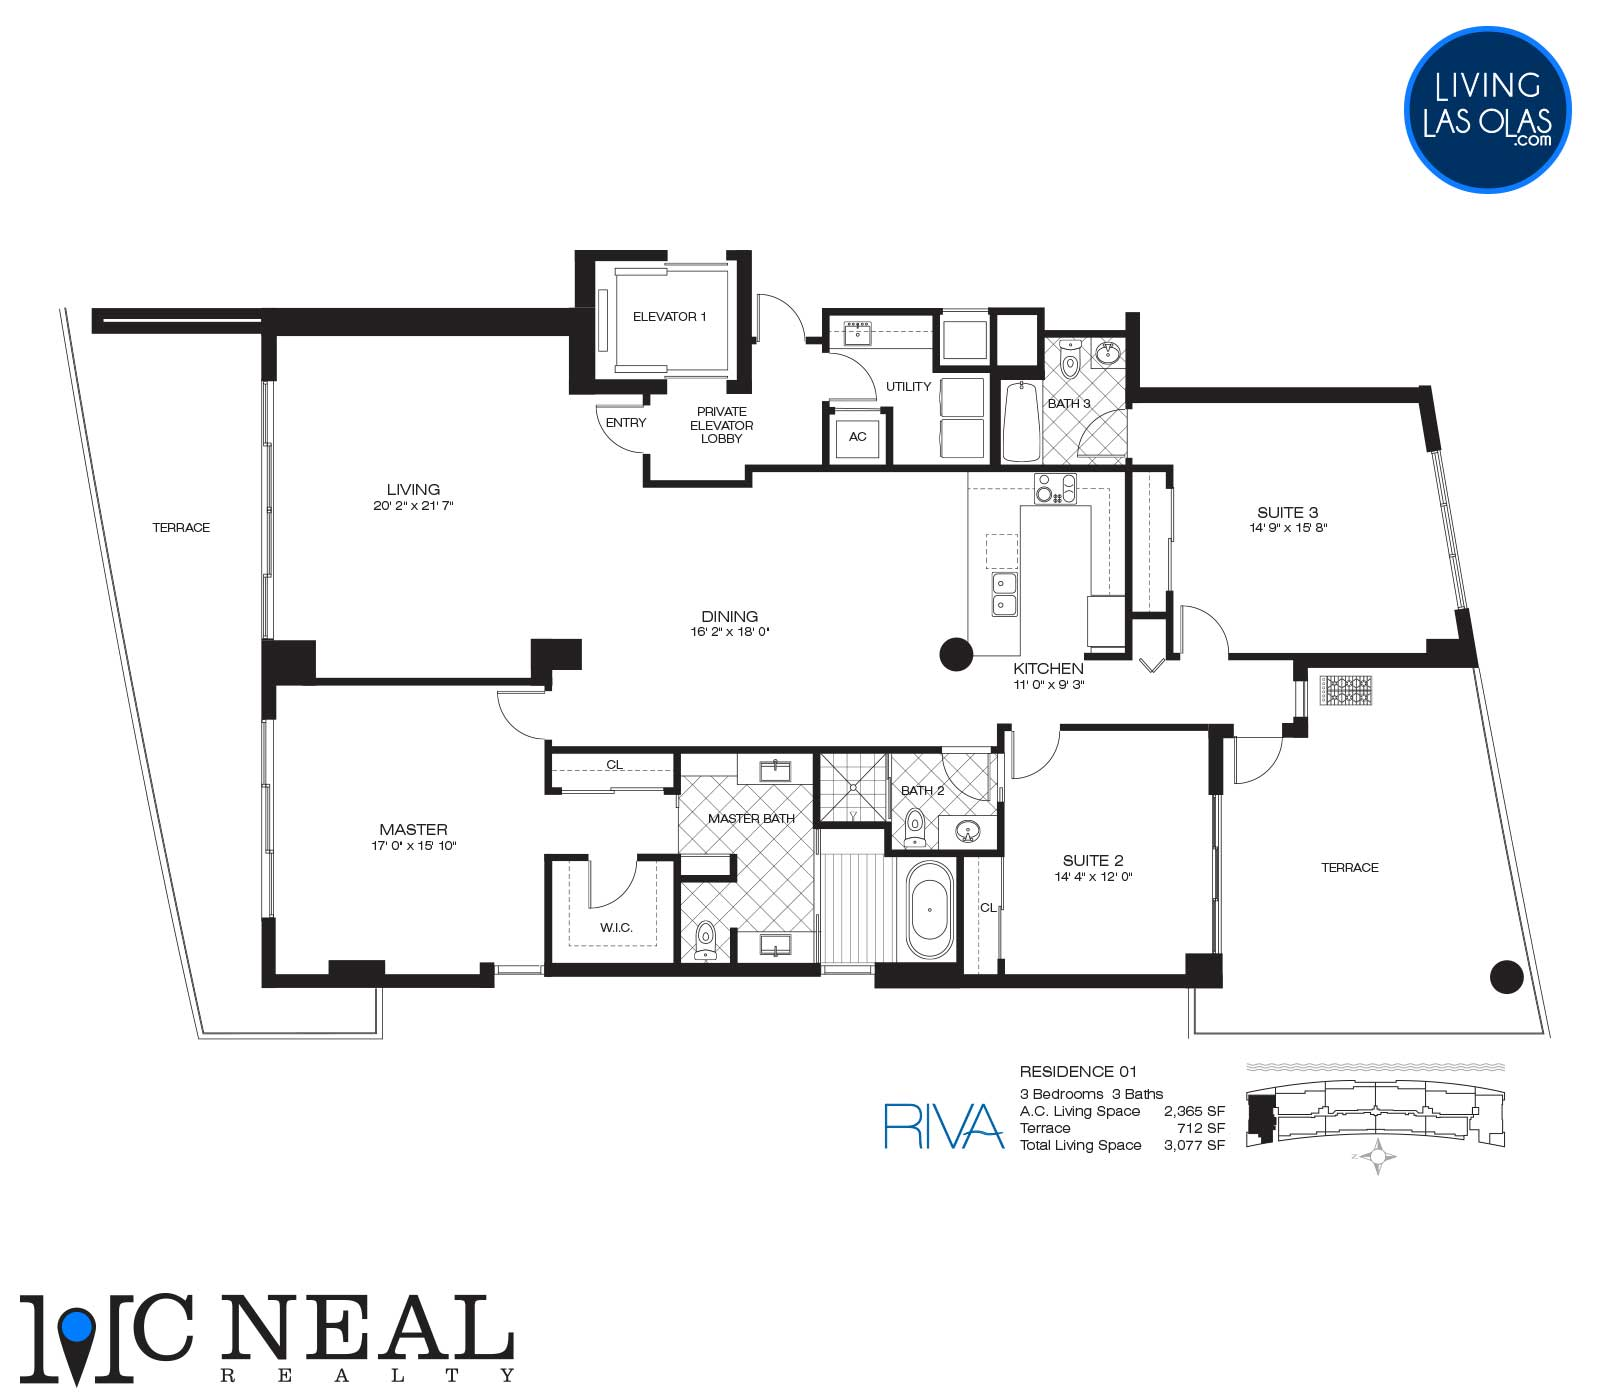 Riva Condos Fort Lauderdale Floor Plans Residence 01